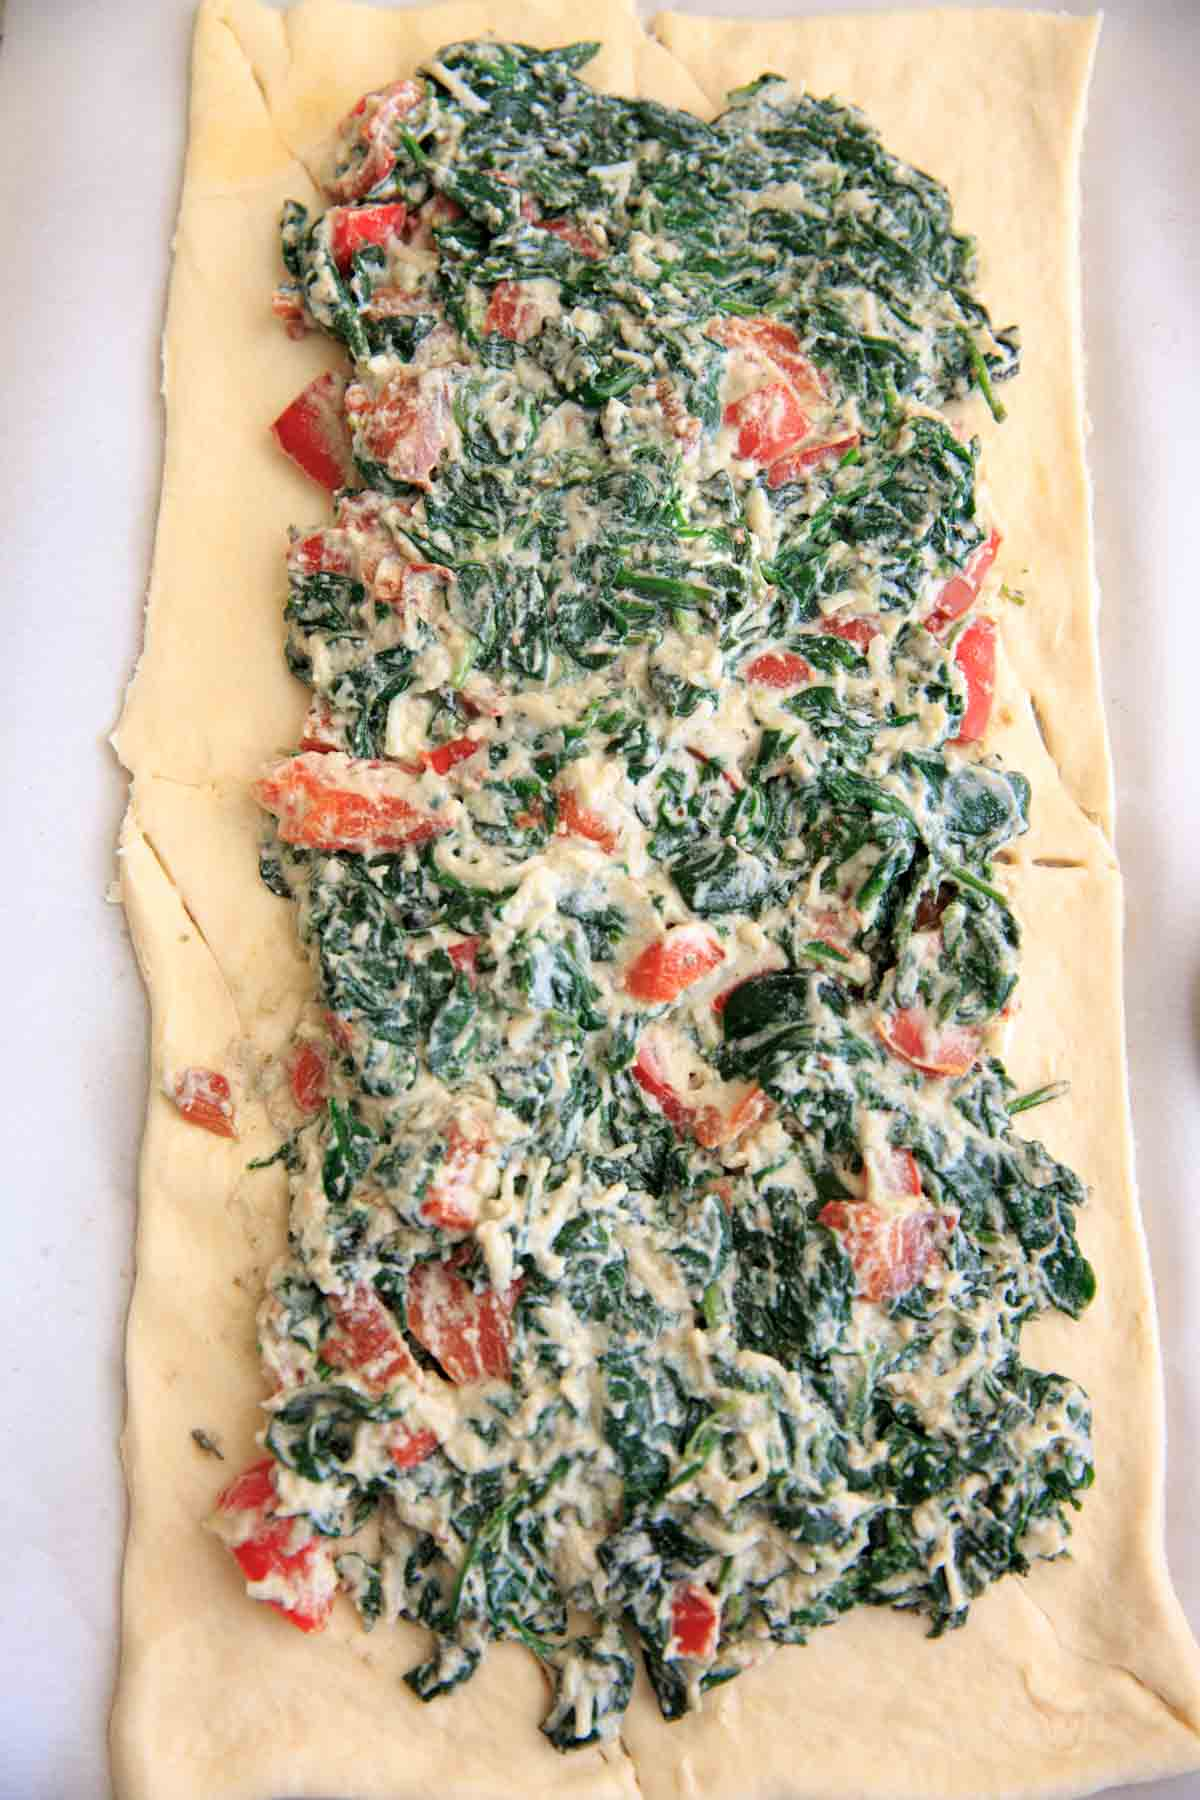 Spinach ricotta mixture spread on crescent wrap before braiding- Spinach Ricotta Crescent Wrap